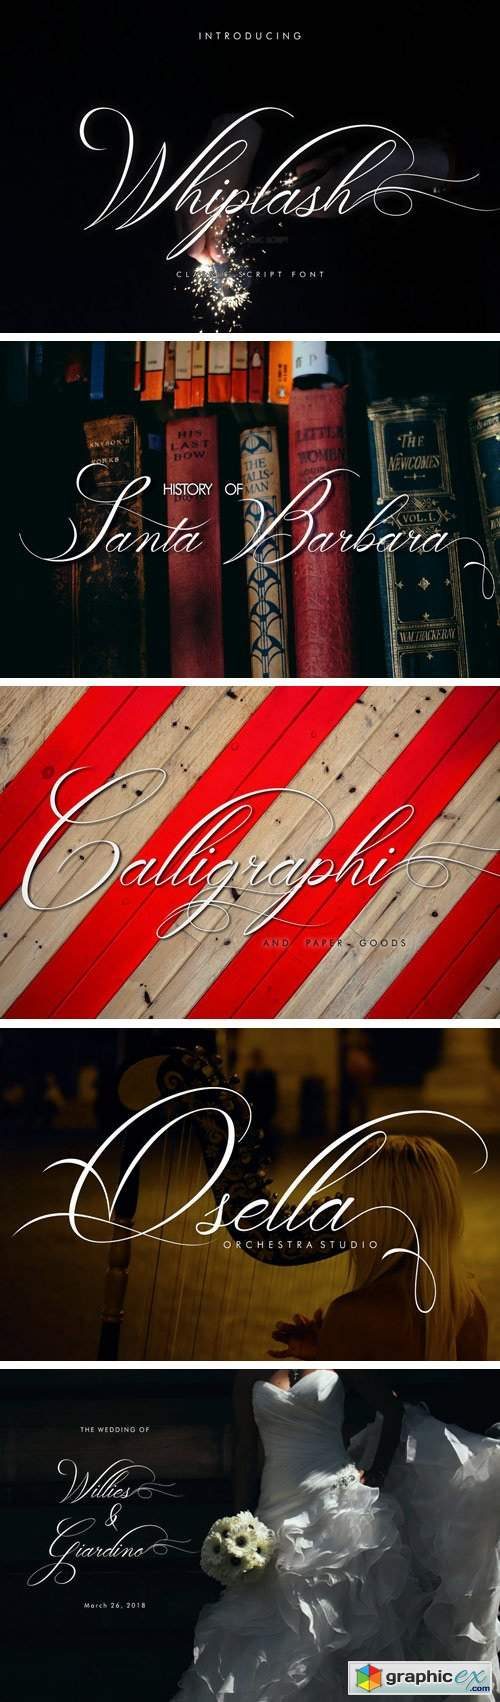 Latest Articles » page 2367 » Free Download Vector Stock